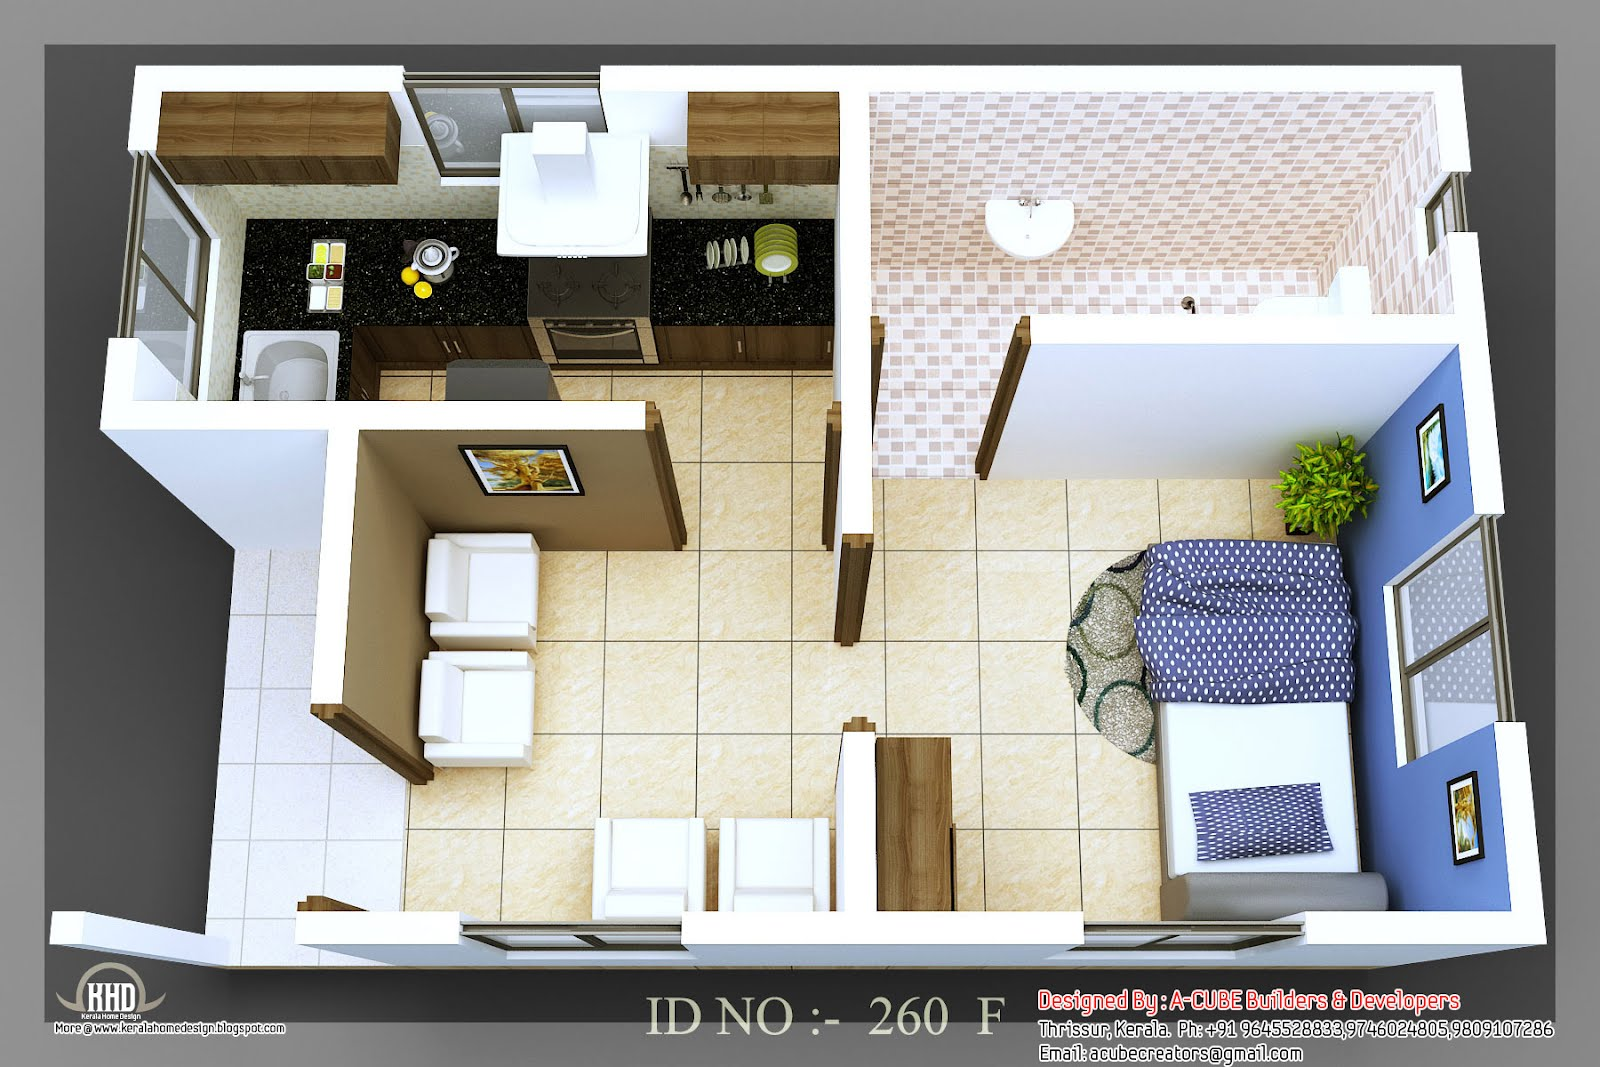 3d isometric views of small house plans home appliance for Small house blueprints